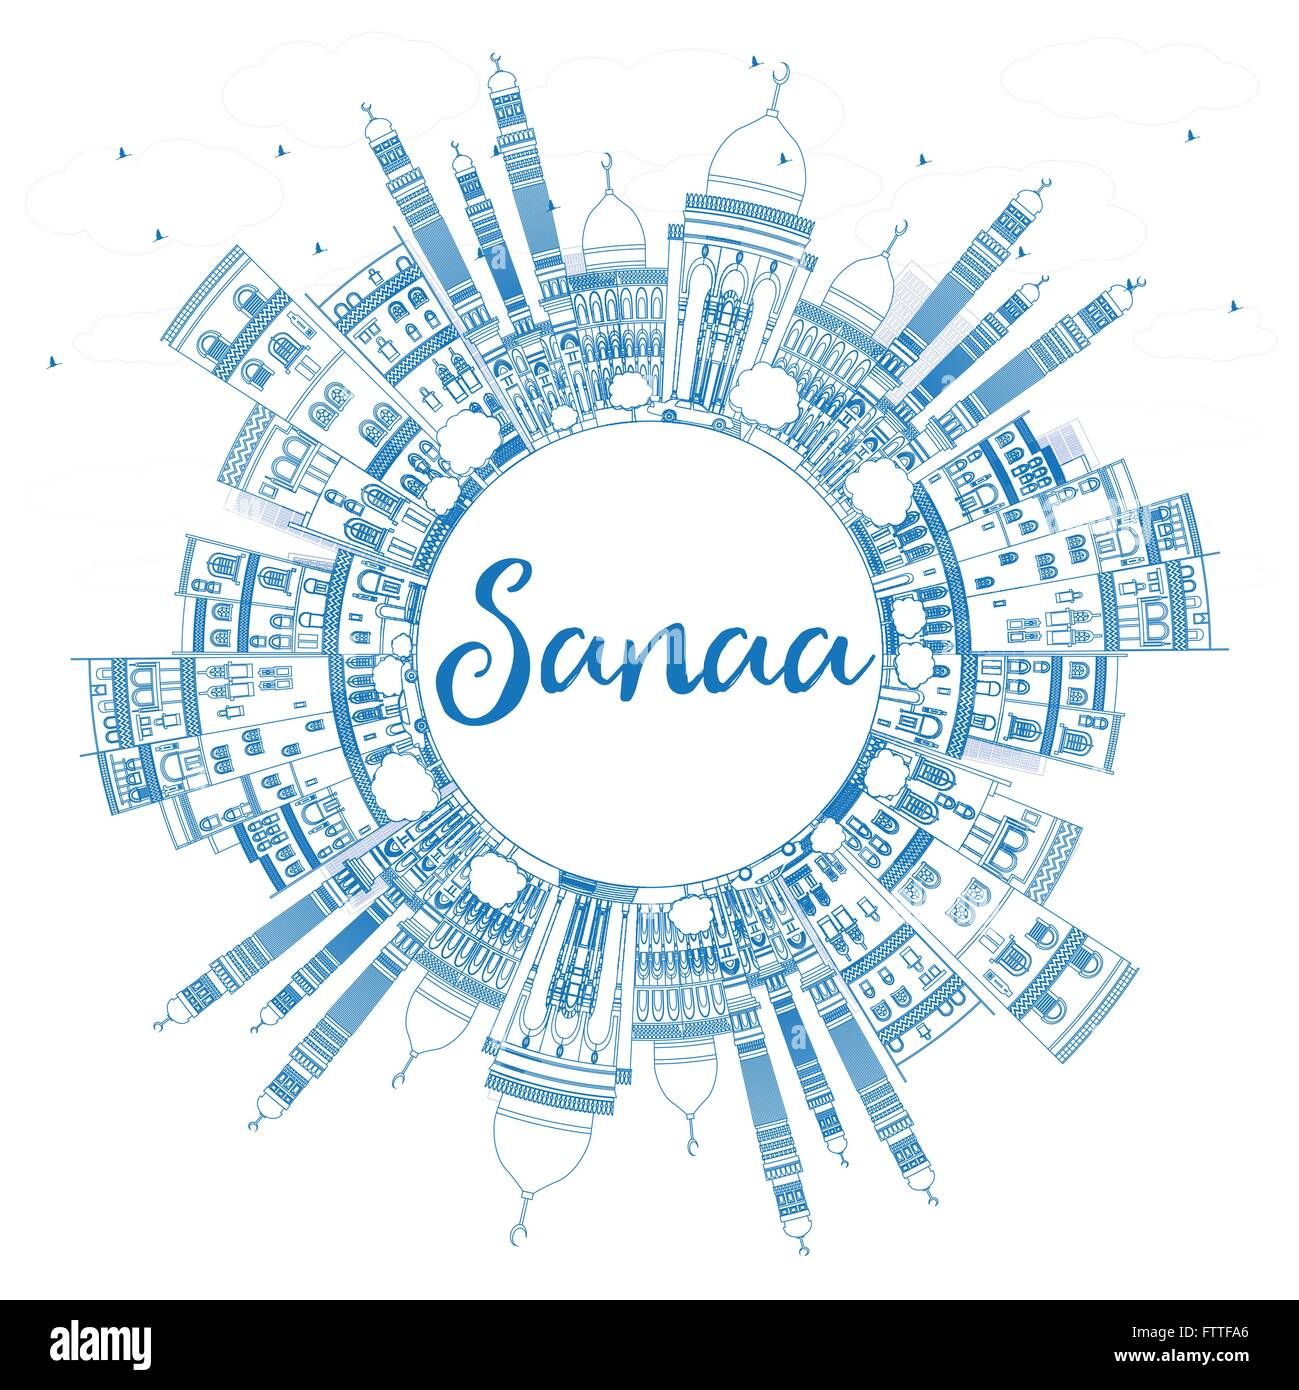 Outline Sanaa (Yemen) Skyline with Blue Buildings. Vector Illustration. Business Travel and Tourism Concept with - Stock Image